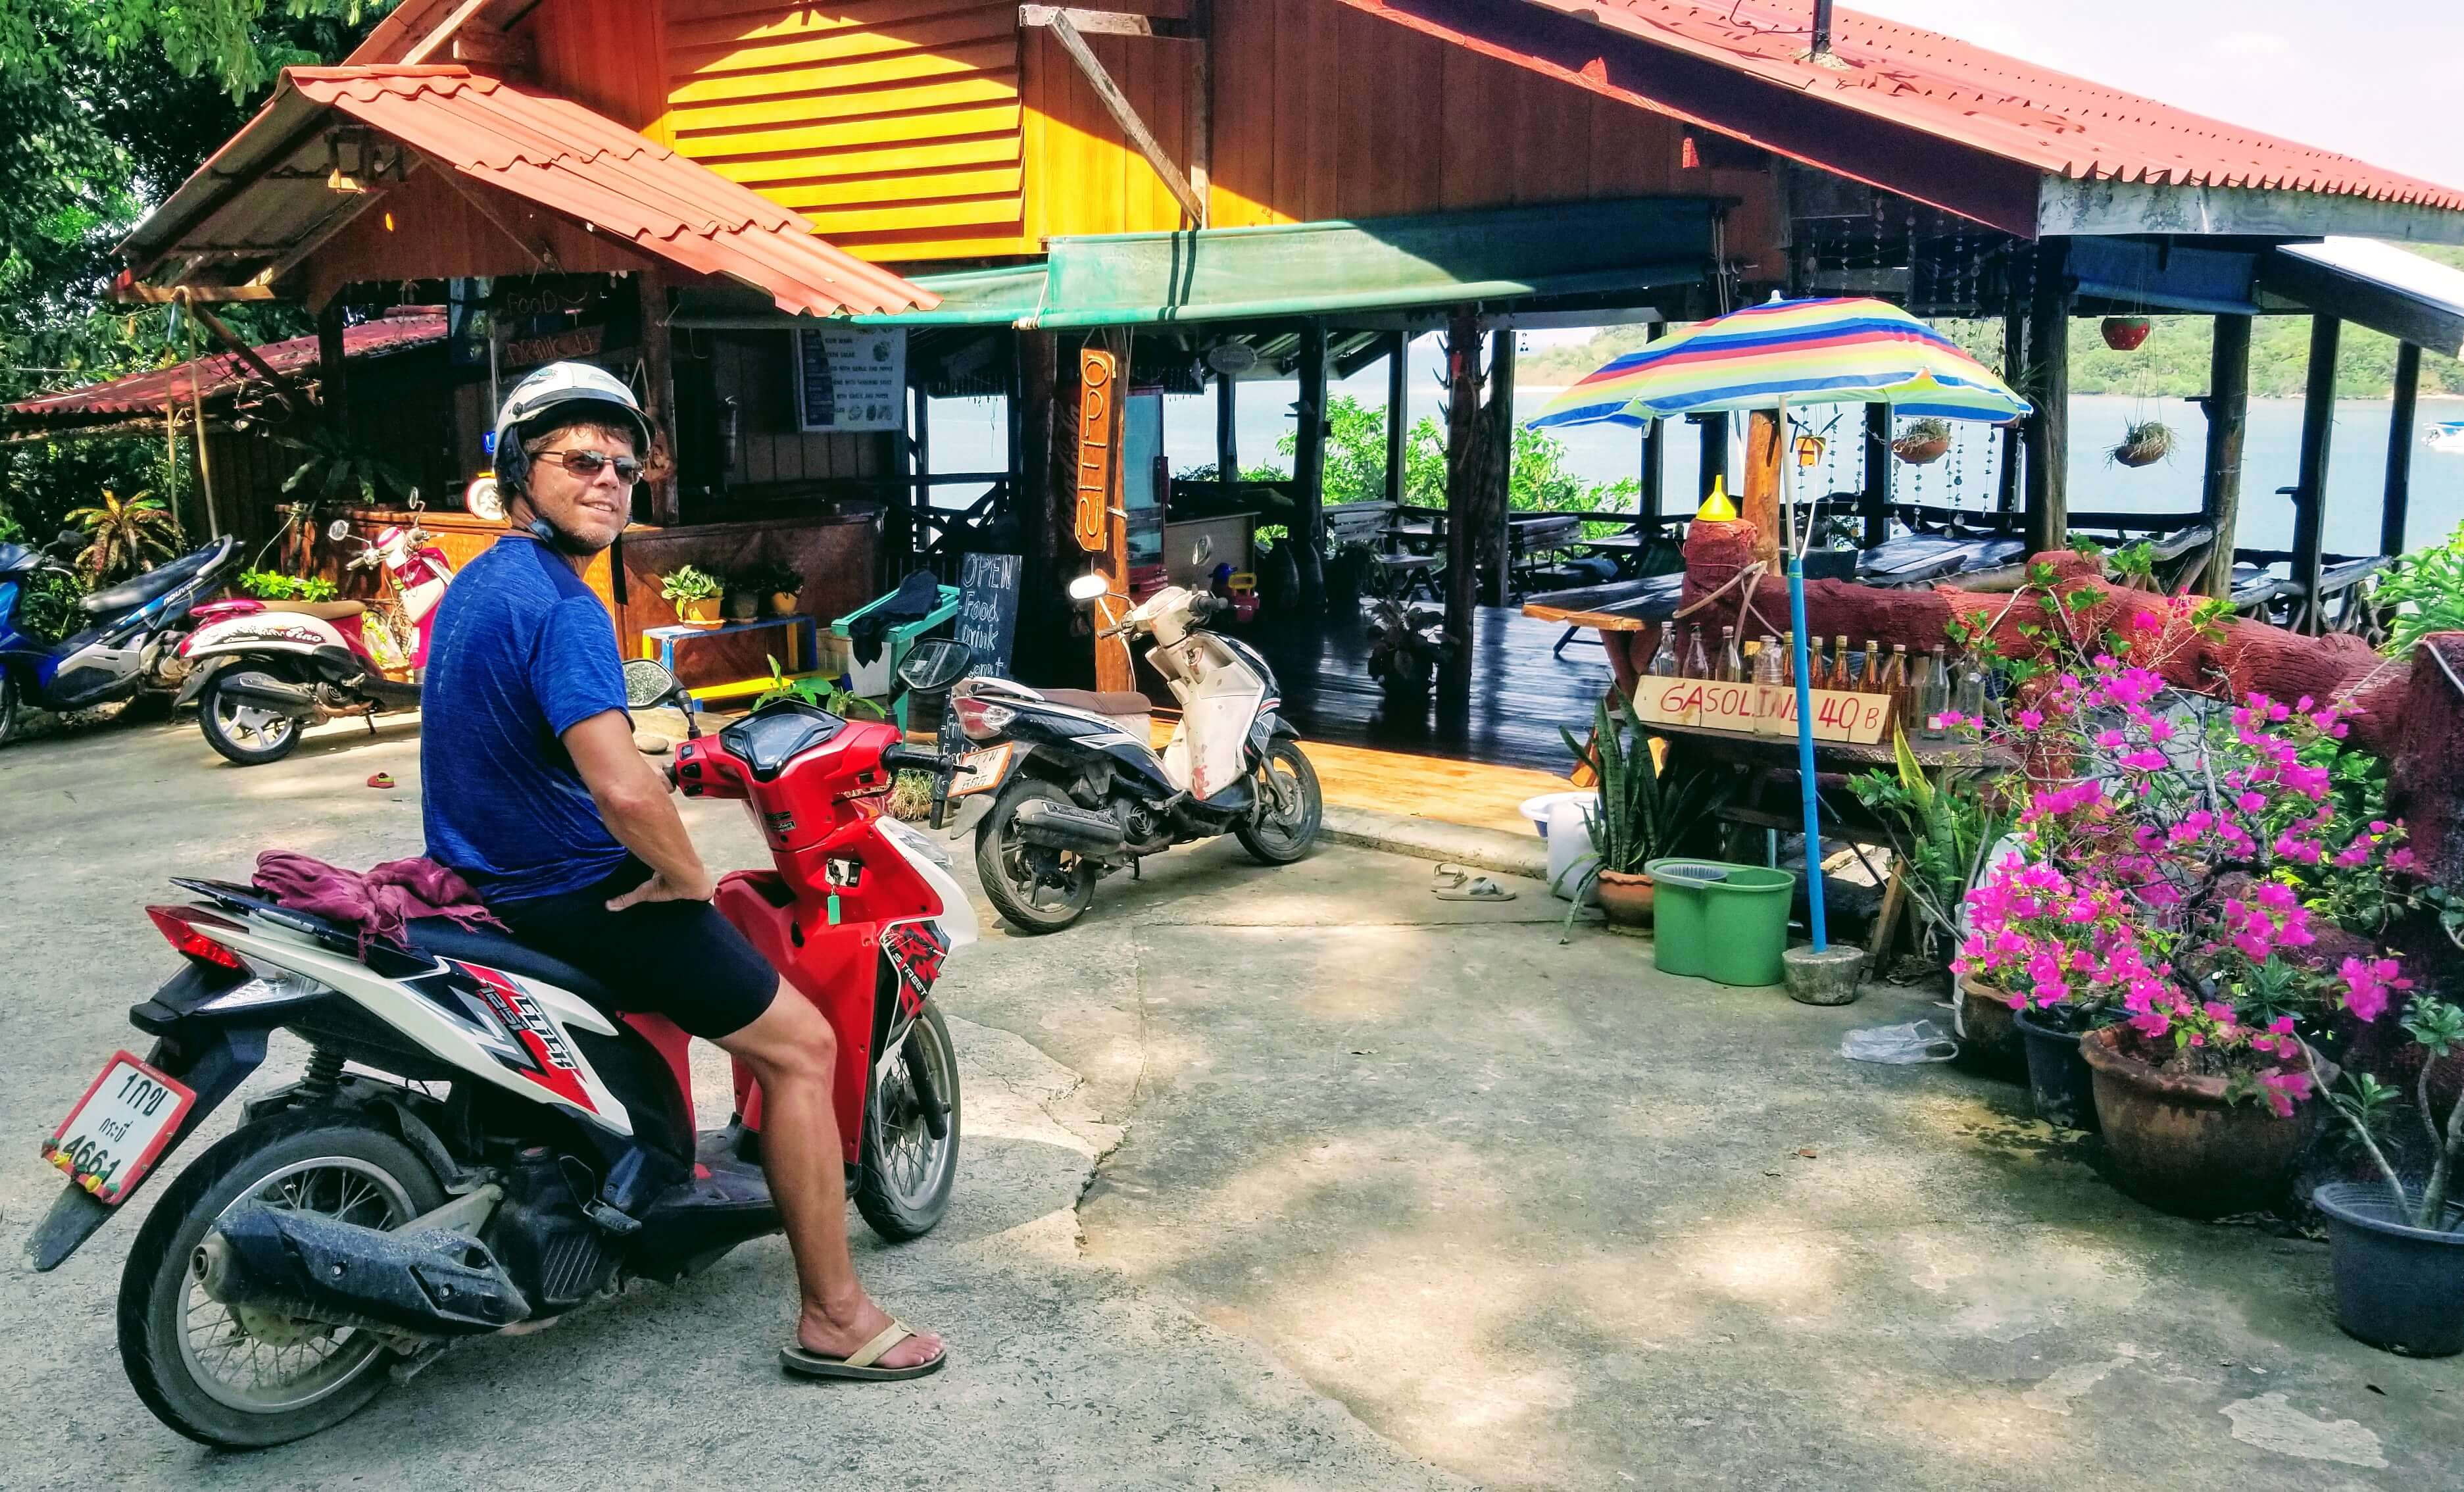 Rob on moped at a cafe overlooking Ko Por